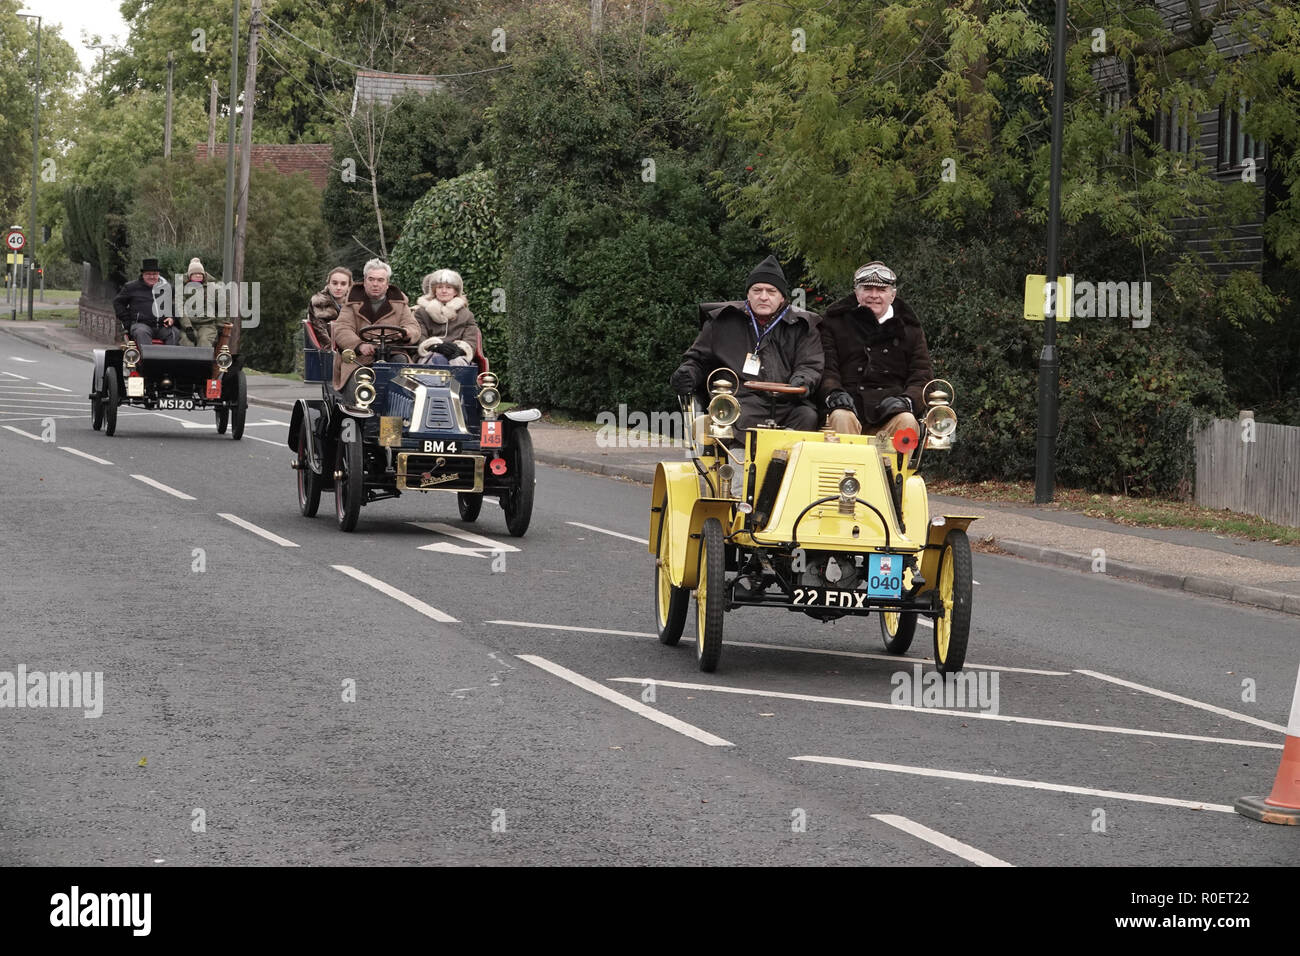 Crawley, West Sussex, UK. 4th November, 2018  Crawley, West Sussex,  UK  Veteran automobiles and their crew at the halfway stage cars stopped at the Honda garage in Crawley on the Bonhams sponsored London to Brighton Veteran car run halfway stop at the Honda showroom in Crawley, Credit: Motofoto/Alamy Live News - Stock Image